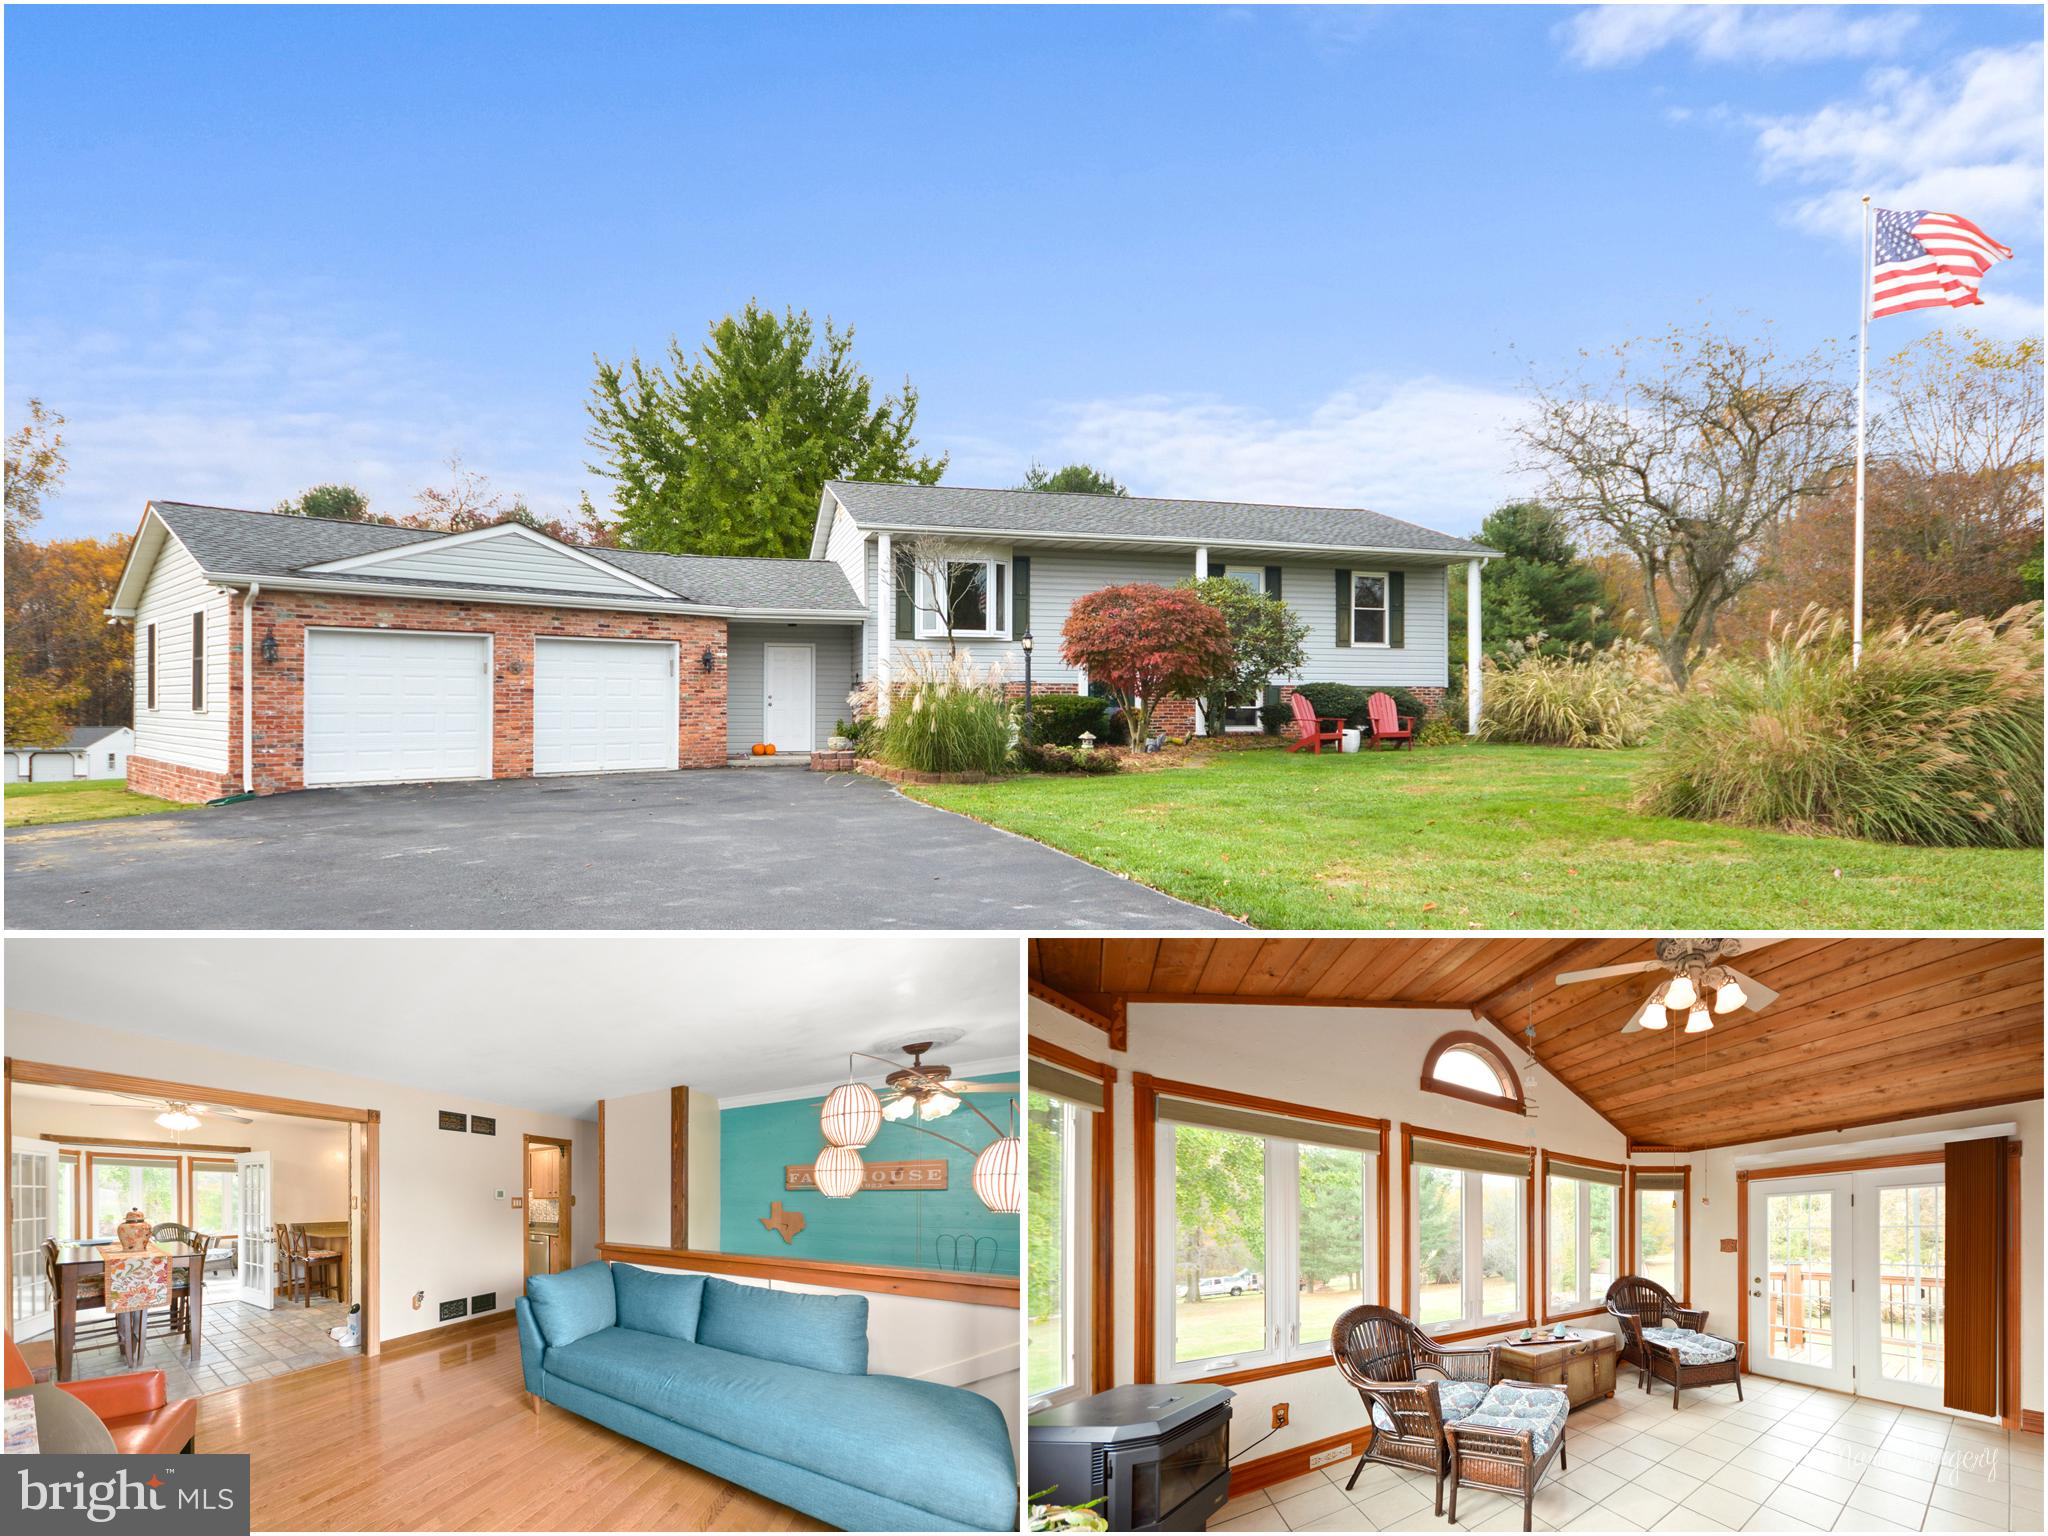 Reduced price!  Updated single family home updated throughout with all the bells and whistles. The l